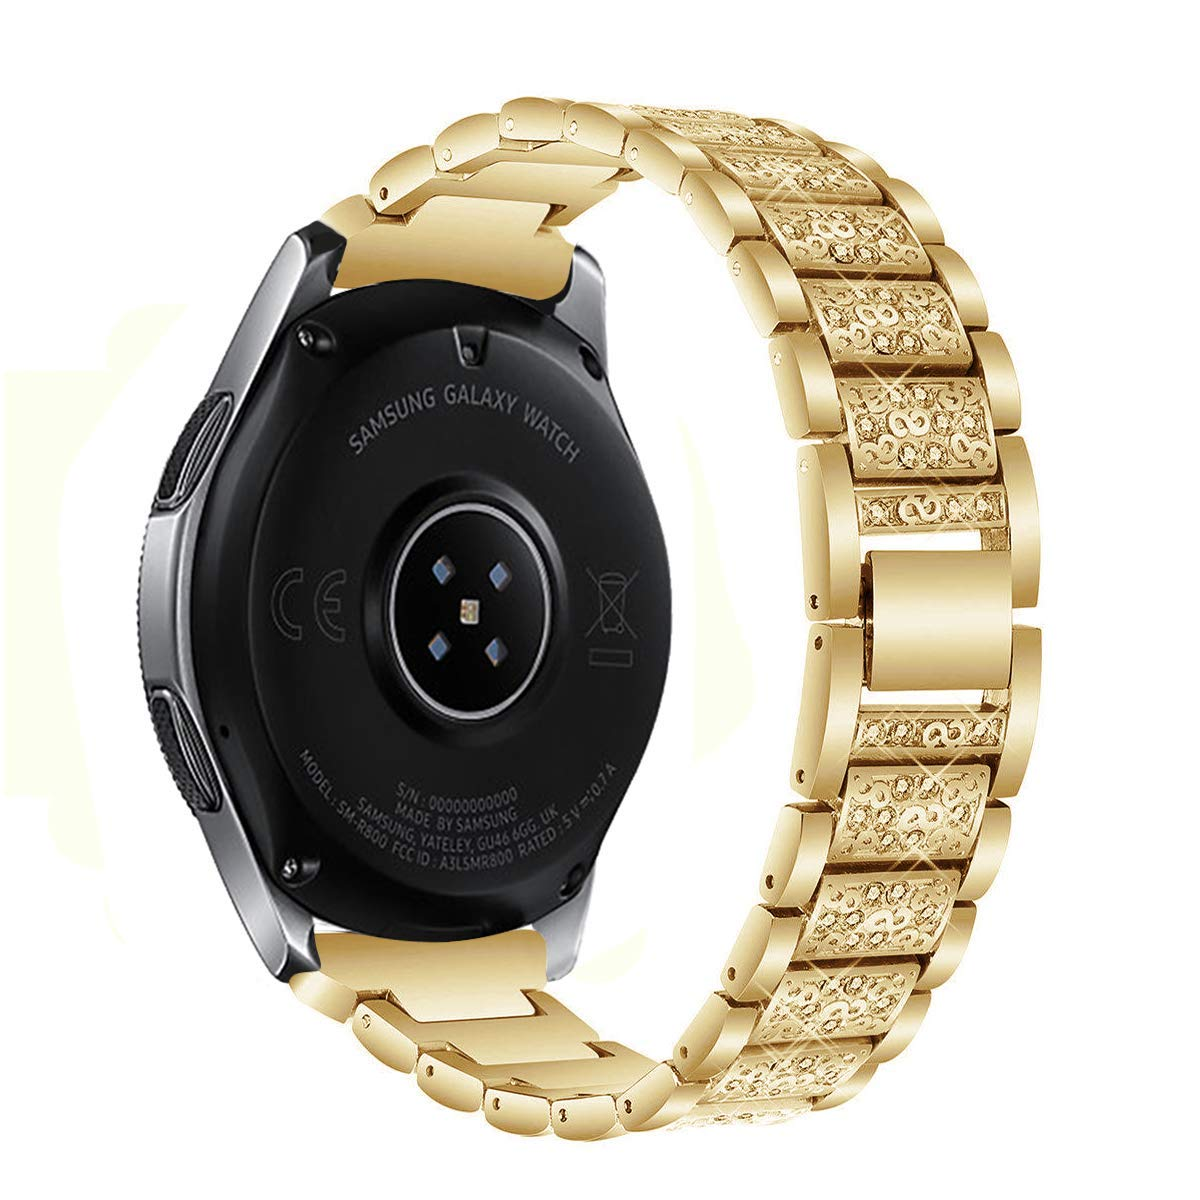 Kartice Compatible Samsung Galaxy Watch(46mm) Bands,22mm Galaxy Watch Band Alloy Crystal Rhinestone Diamon Replacement Bracelet Strap fit Samsung Galaxy Watch SM-800 Smart Watch(46mm).-Gold